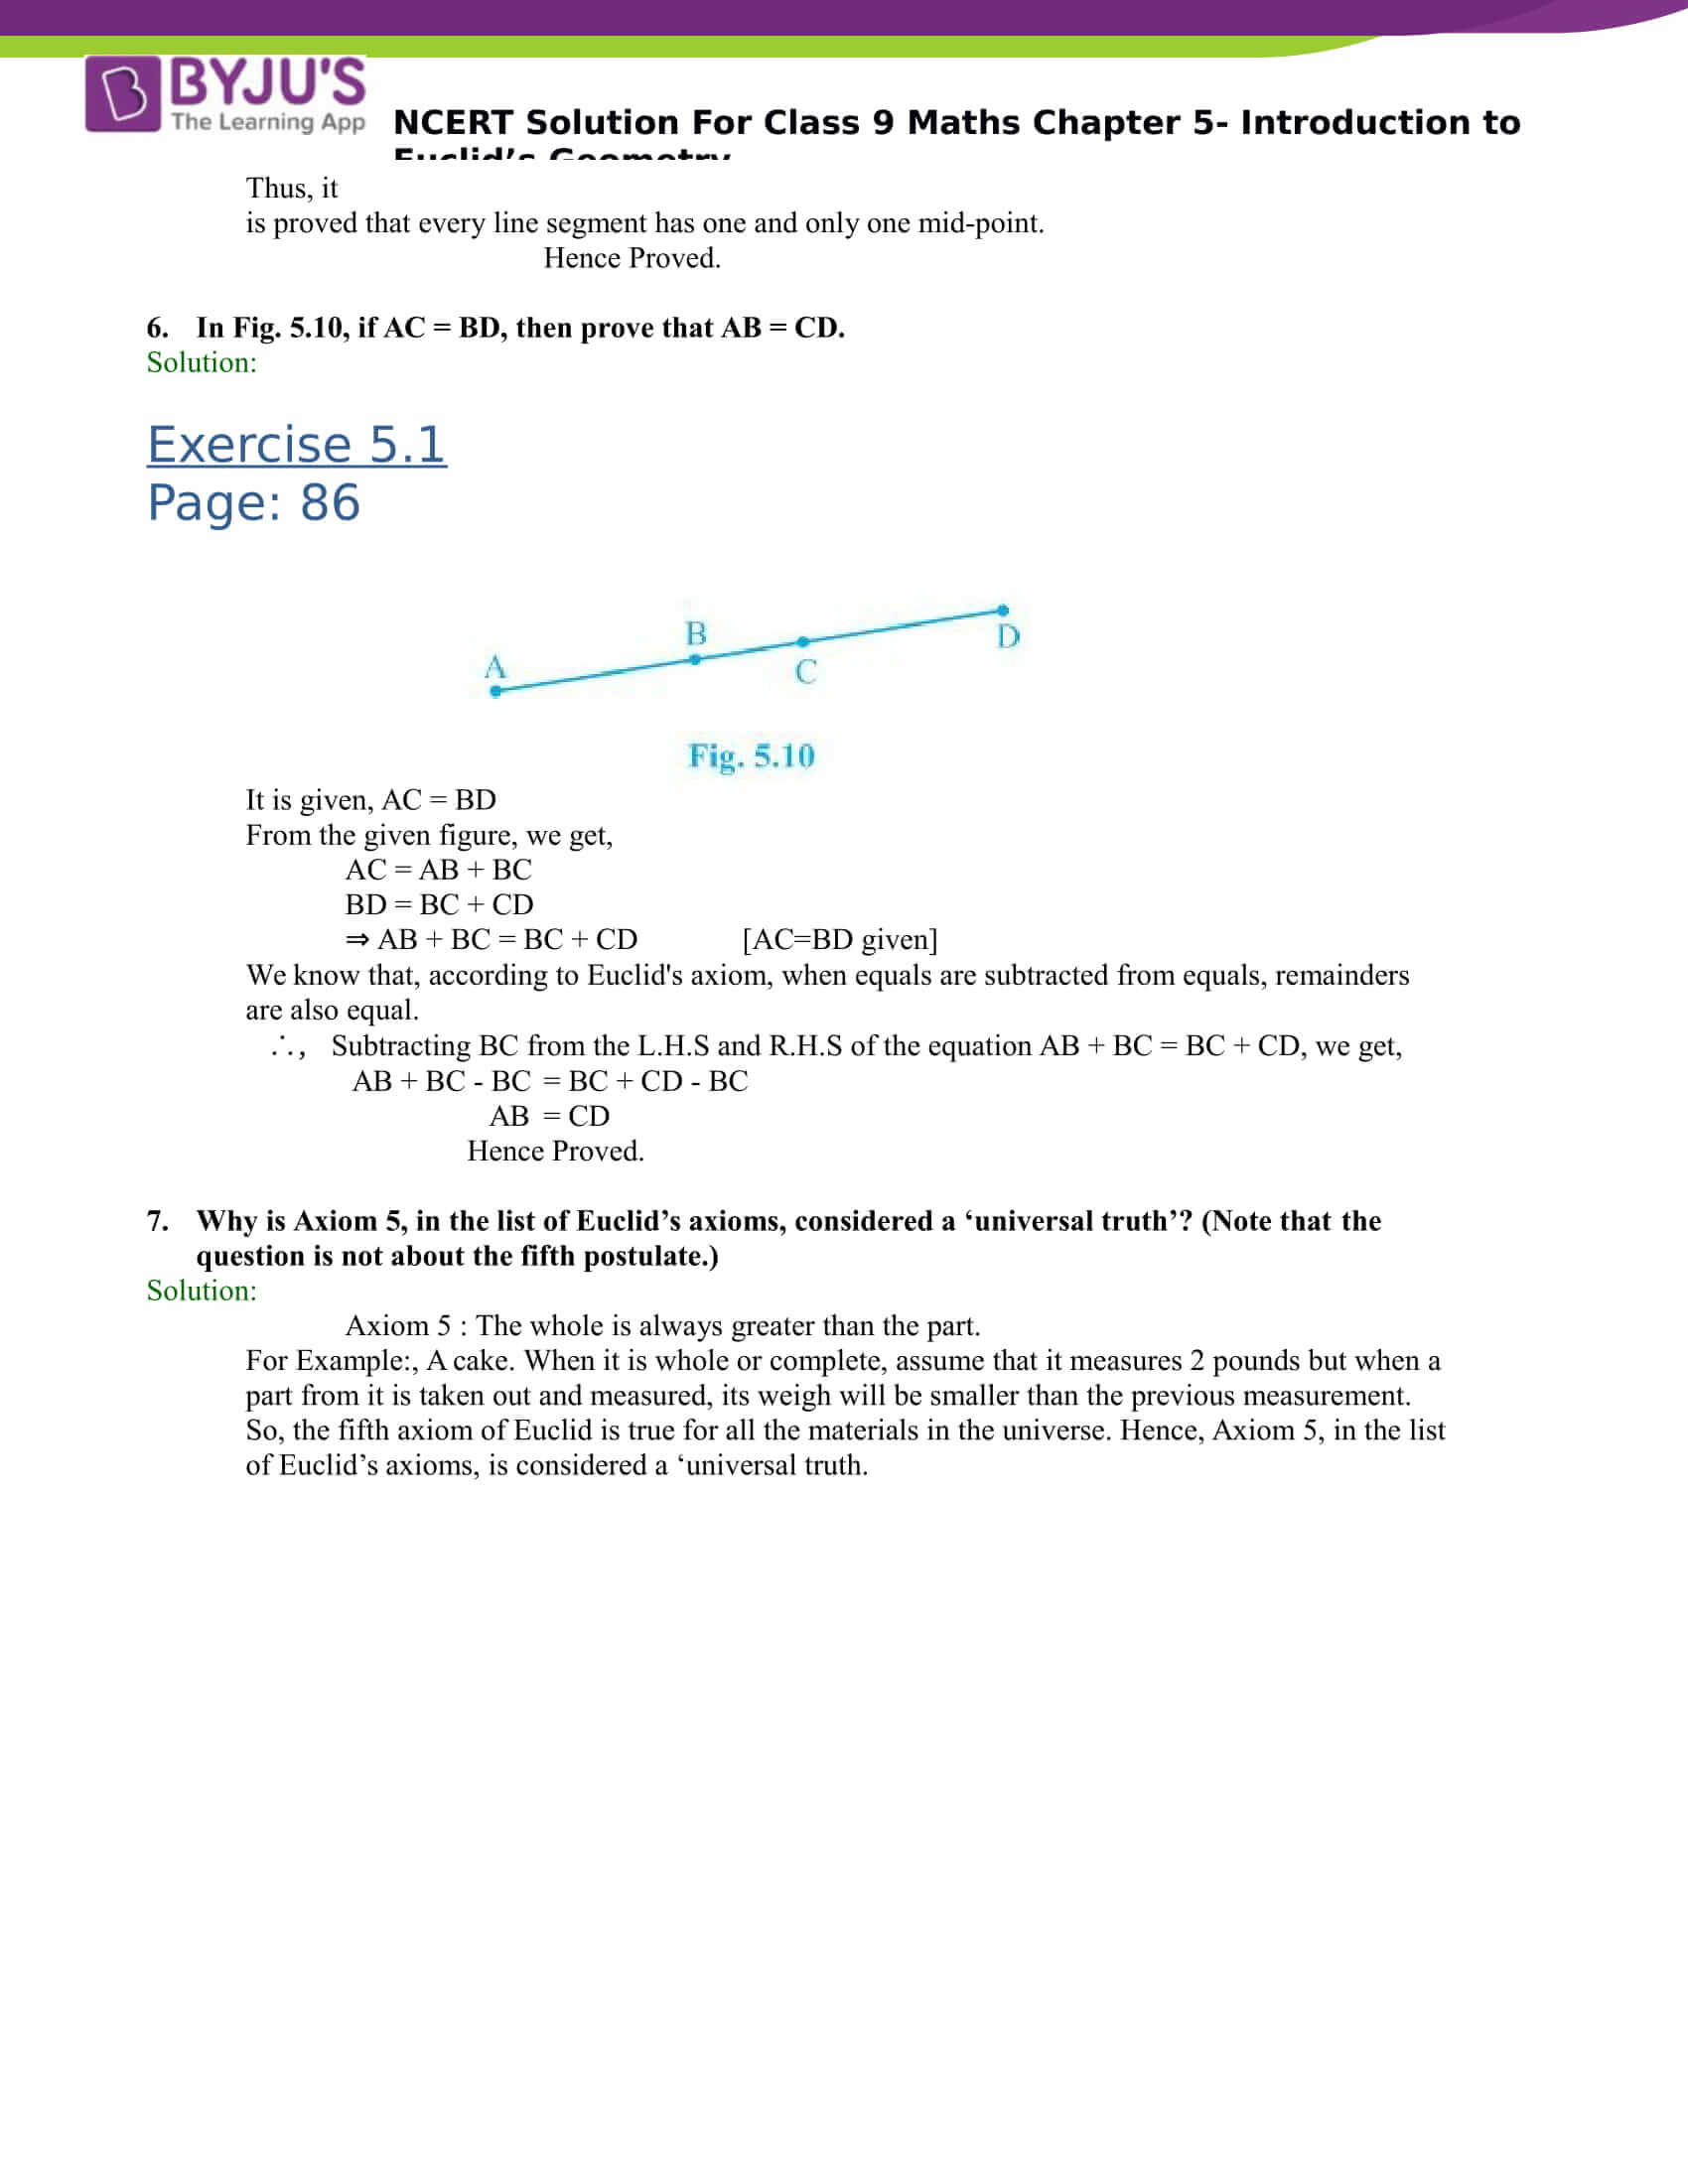 NCERT Solutions for class 9 Maths Chapter 5 Introduction to Euclids Geometry Part 4